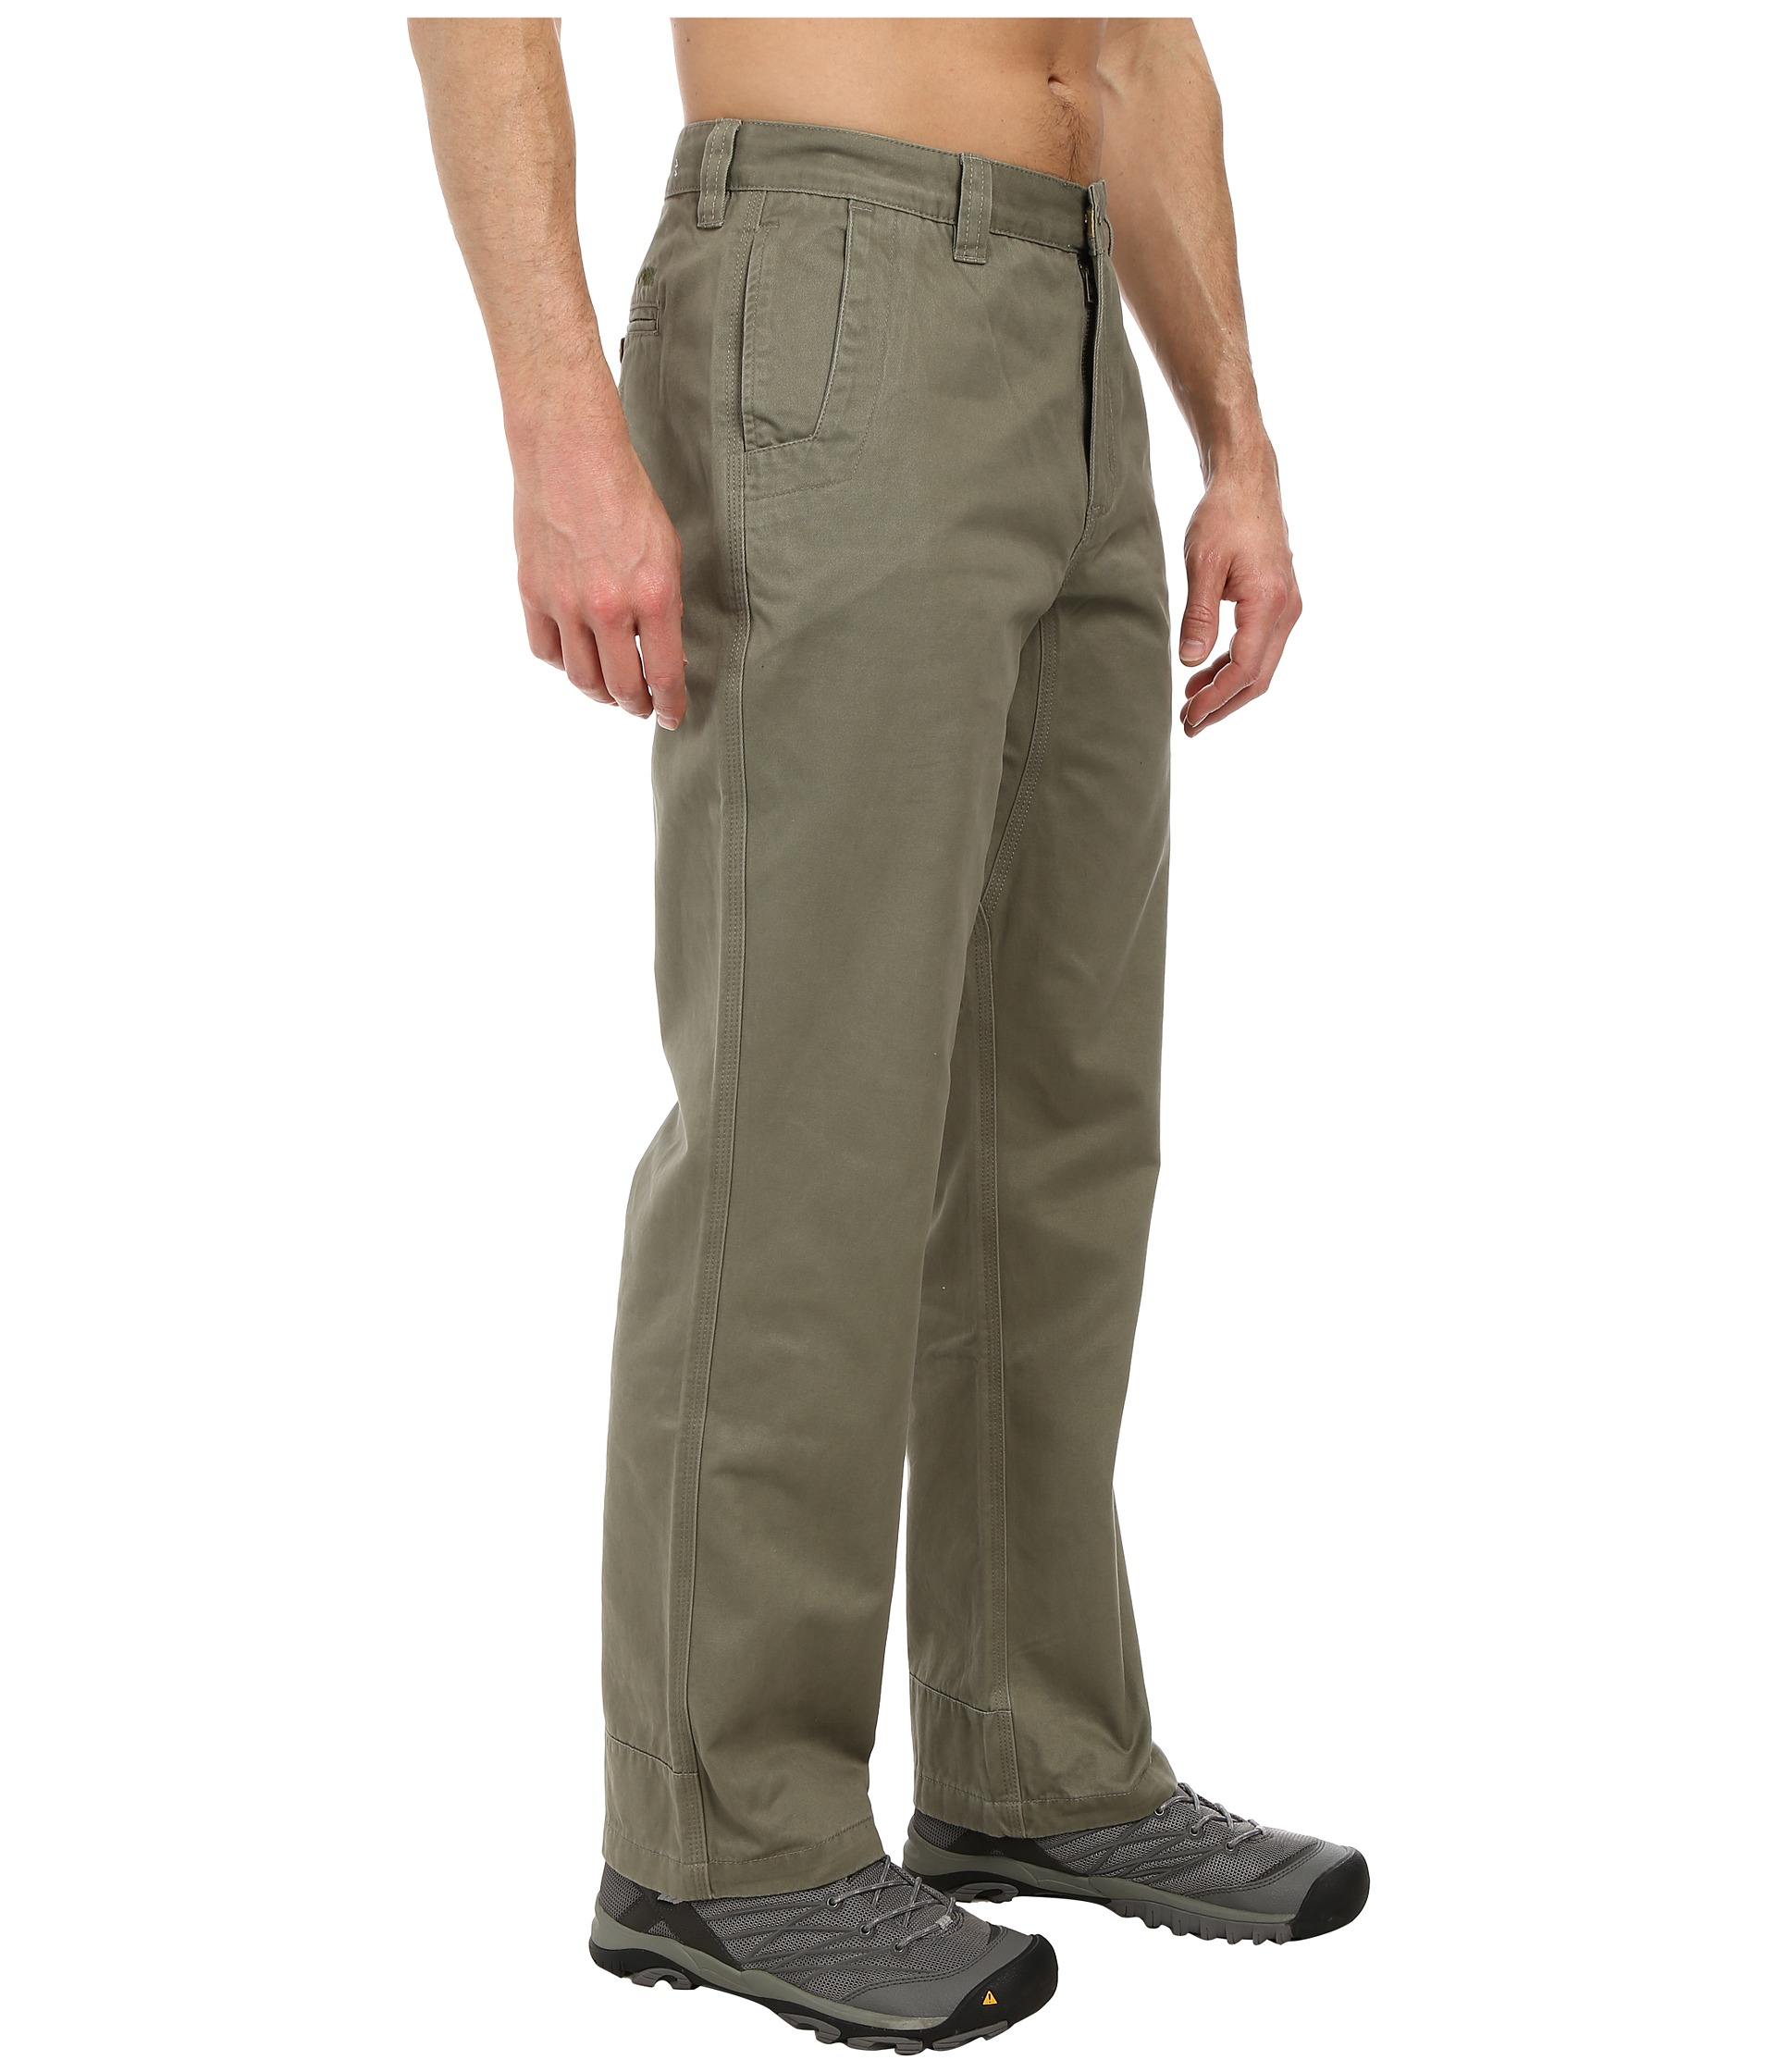 Mountain Khakis: Built for the Mountain Life. Based in Jackson Hole, Wyoming, MK proudly manufactures durable, comfortable apparel including pants, shorts, belts, hats, visors and tees designed for Men, Women, Boys and Girls that live an active, outdoor lifestyle.